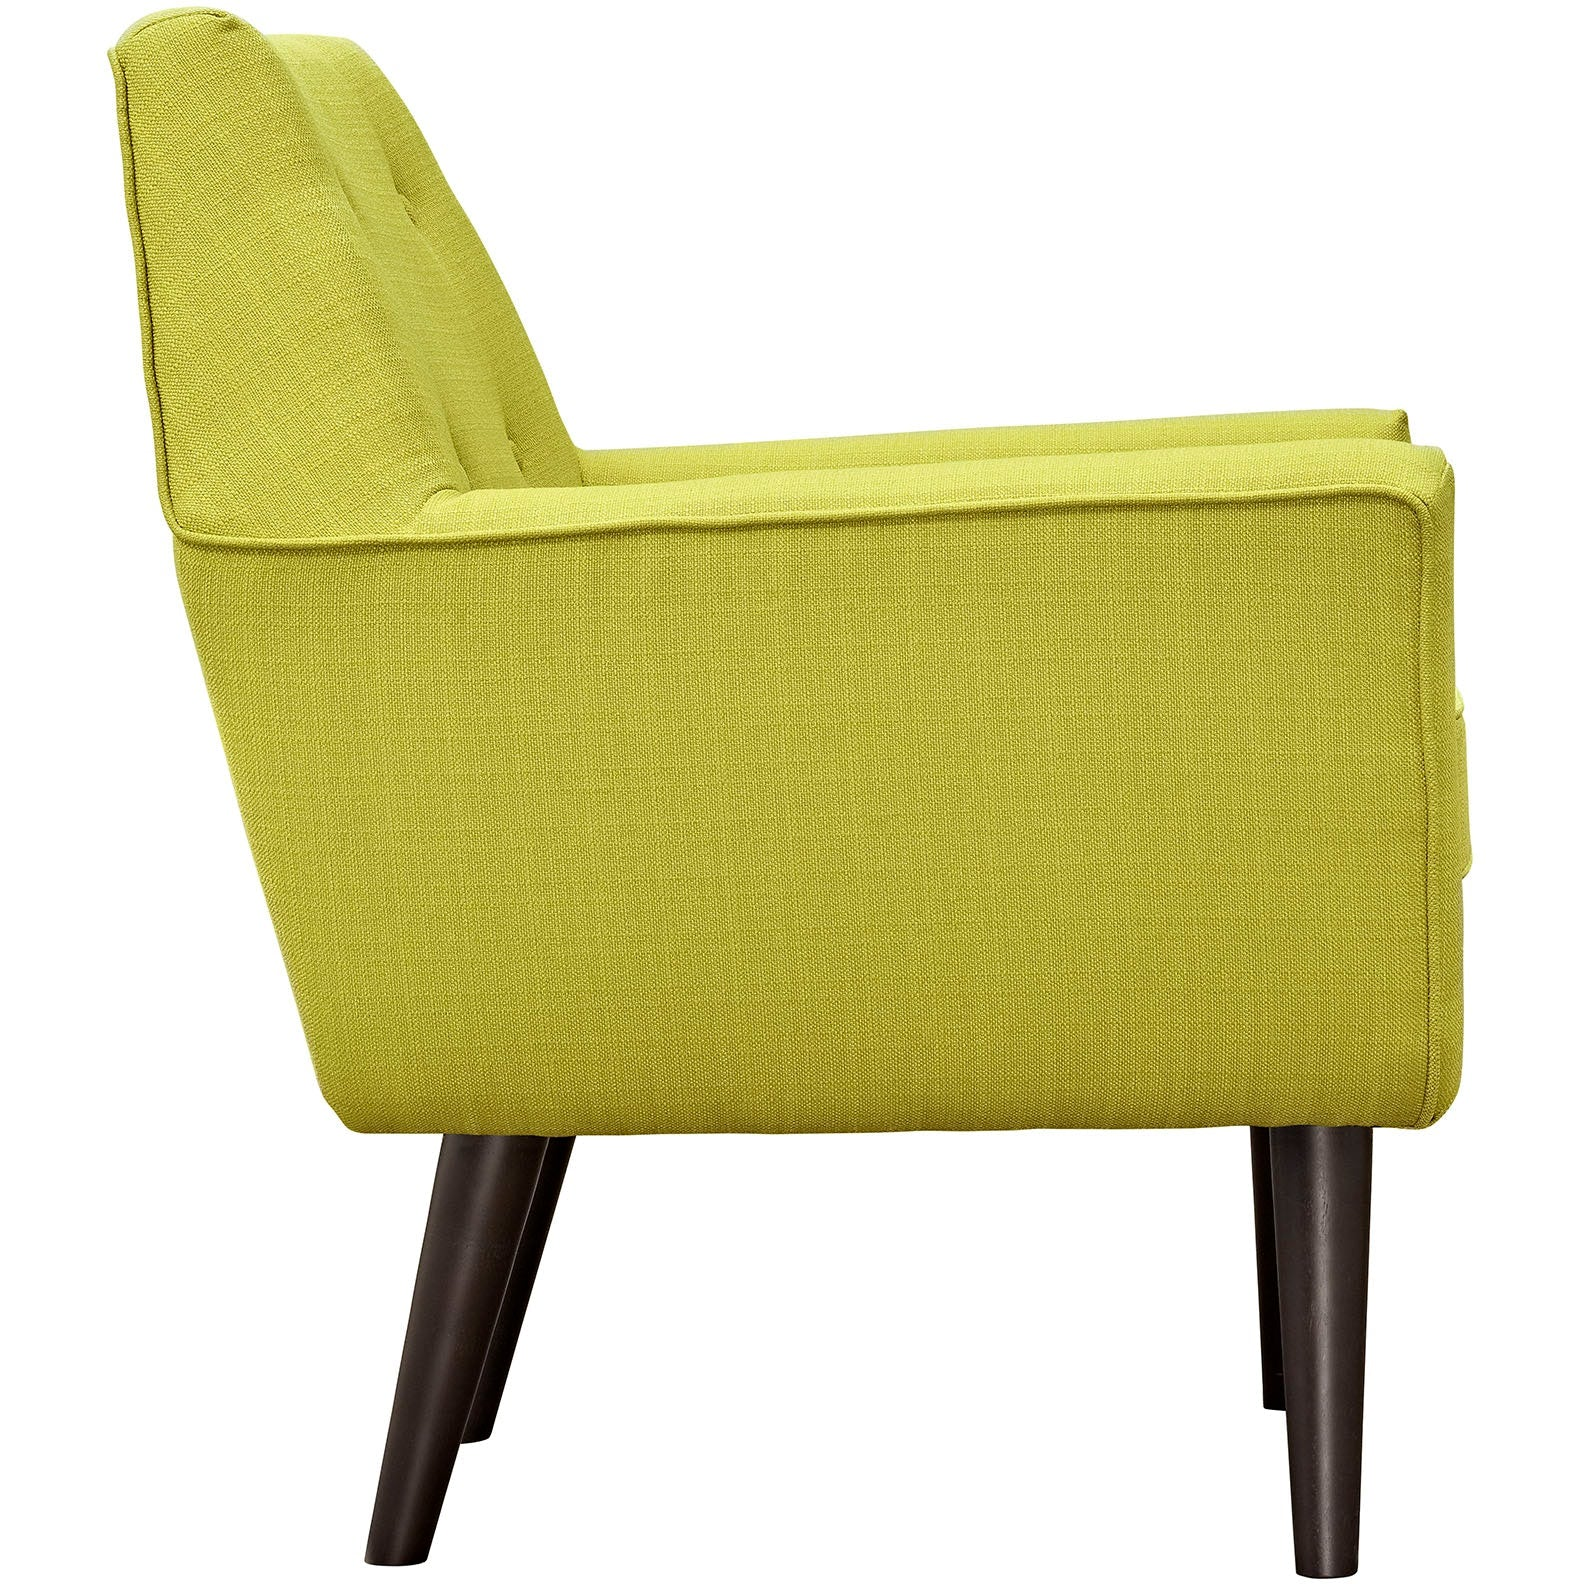 Posit Upholstered Fabric Armchair - Wheatgrass